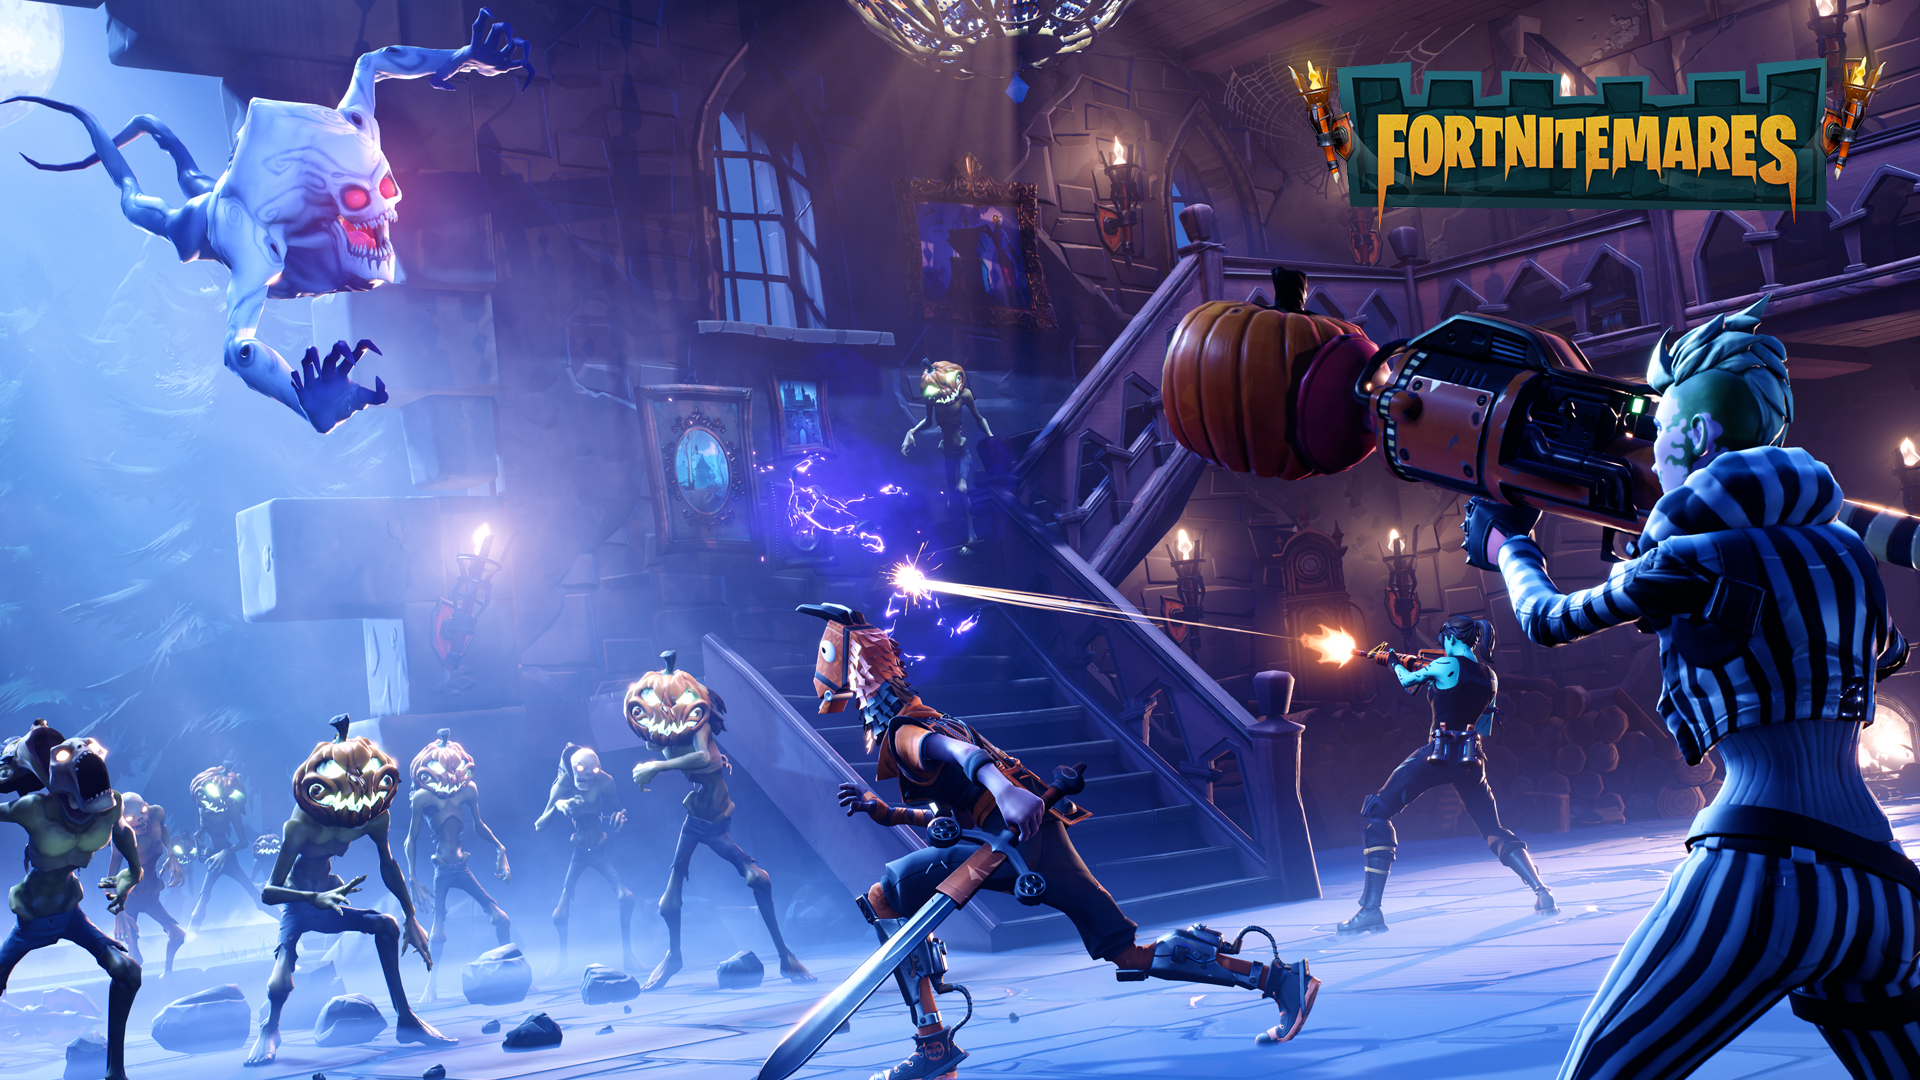 Fortnite%2Fblog%2Ffortnitemares-update-1-8-patch-notes%2FPVE_Gameplay_EN-1920x1080-b2ca6d7752cea63d739217de8eebb67fefb2efe6